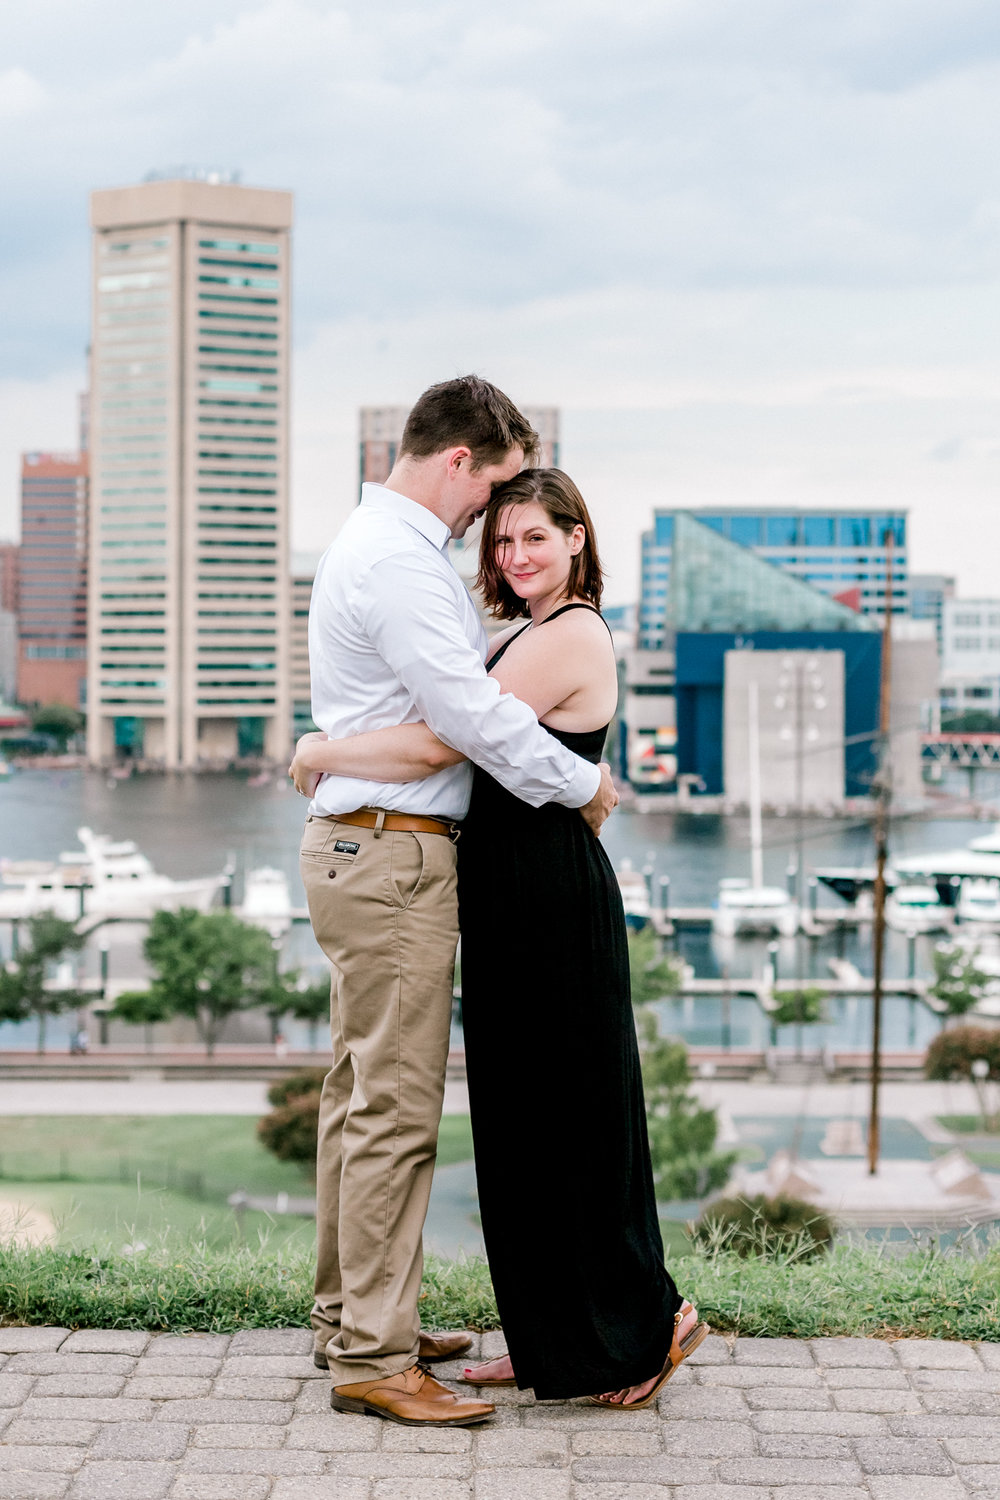 Baltimore Federal Hill Park Stormy Engagement Session Lytle Photo Co (82 of 92).jpg